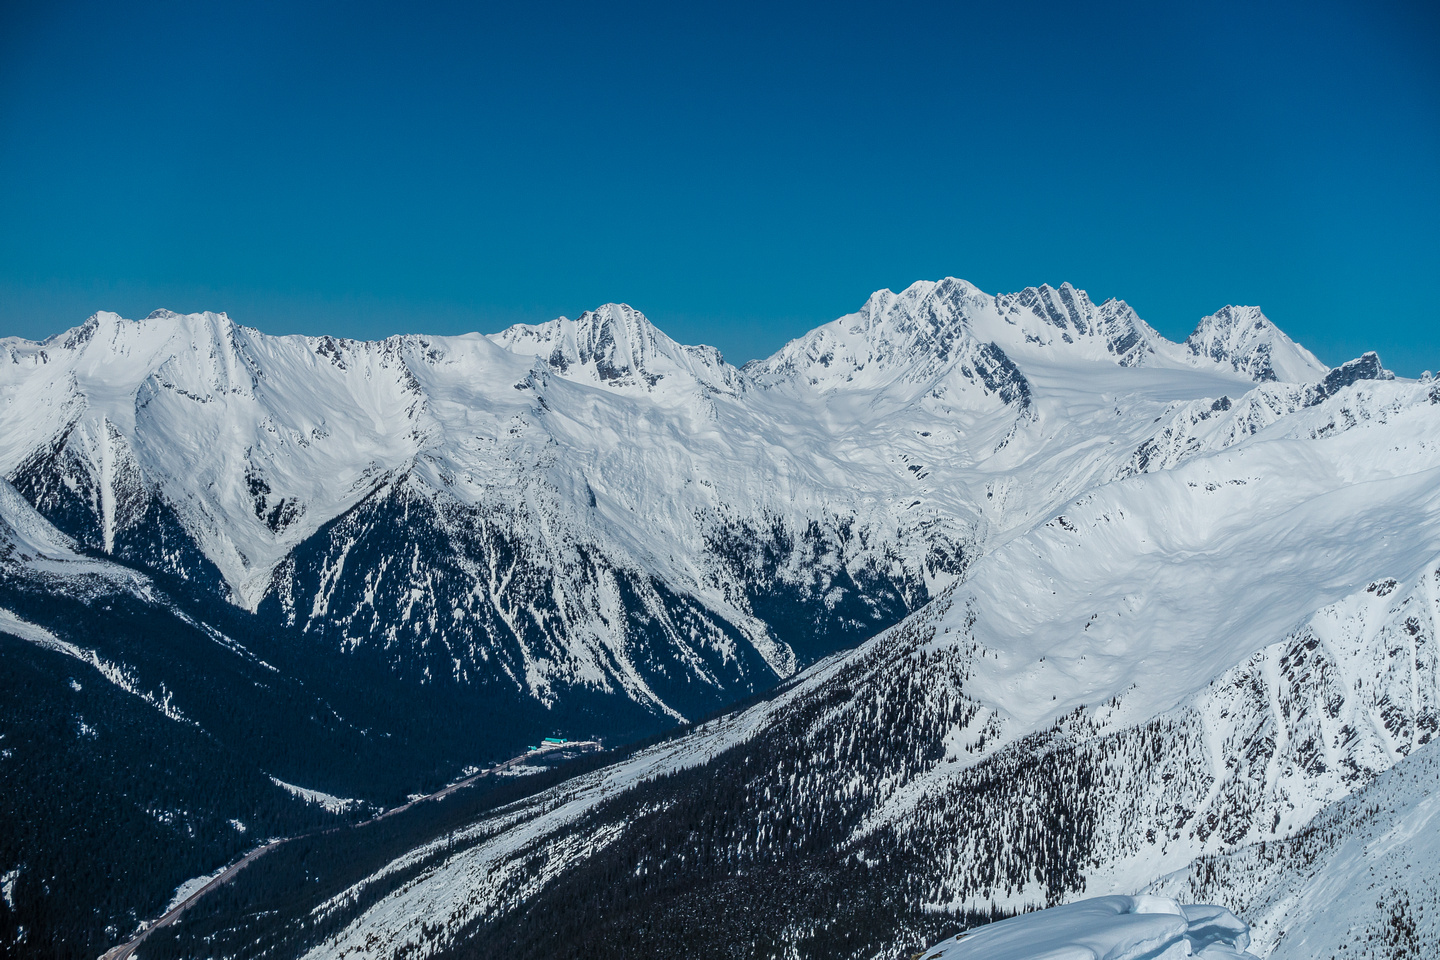 Mount Rogers and Hermit Mountain on the right. Mount Sifton, Grizzly and Ursus Minor on the left.